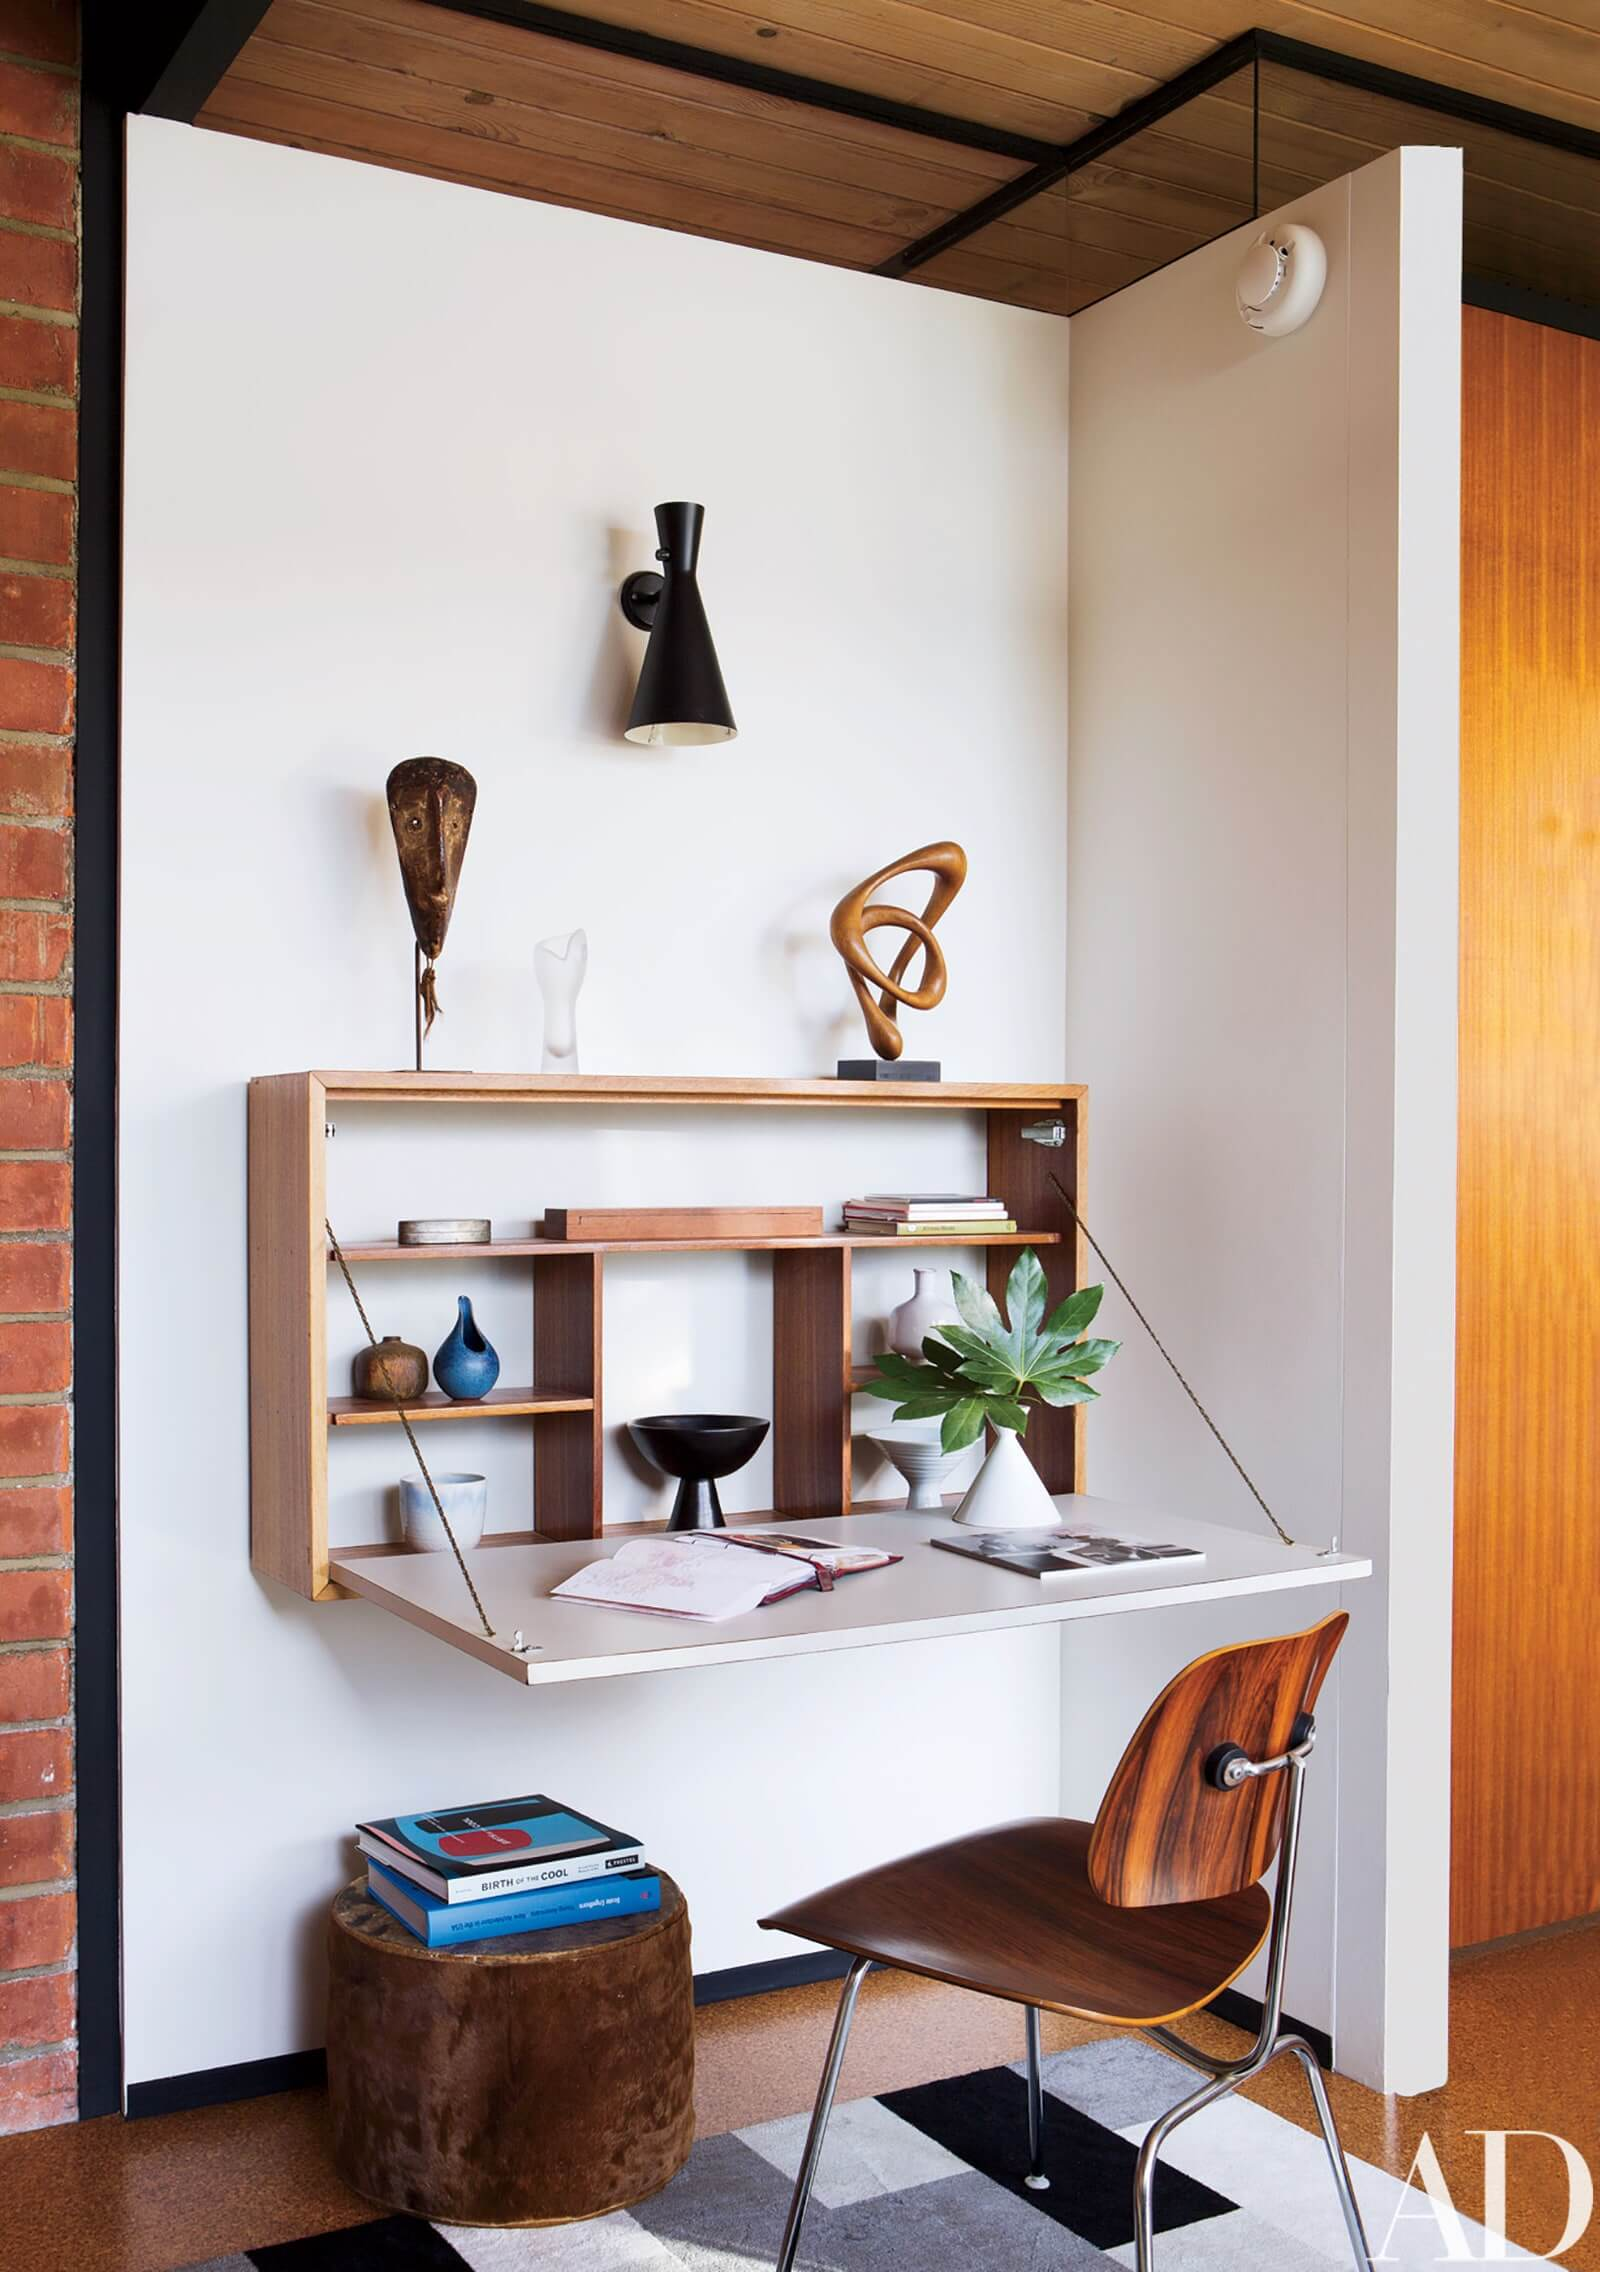 FOLDING FURNITURE FOR SPACE SAVING AND SMALL HOUSE DECORATION IDEAS